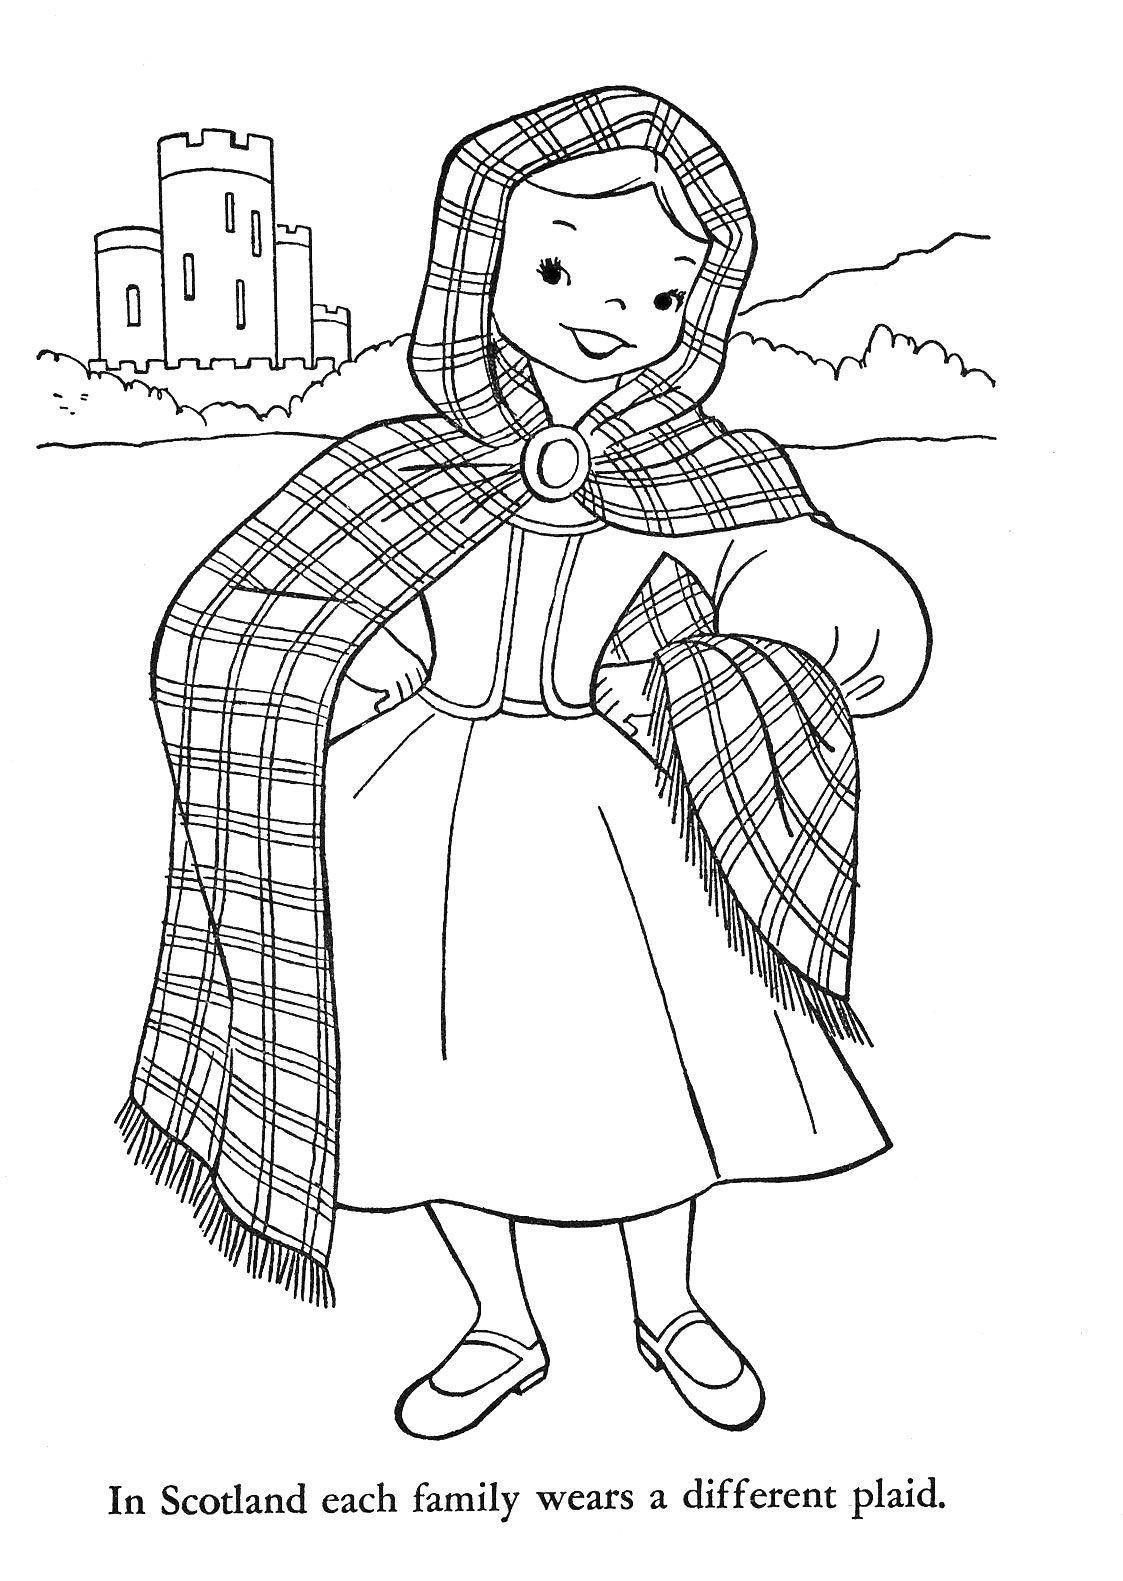 Clip Art Scotland Coloring Pages 1000 images about scotland on pinterest around the worlds other and gel pens